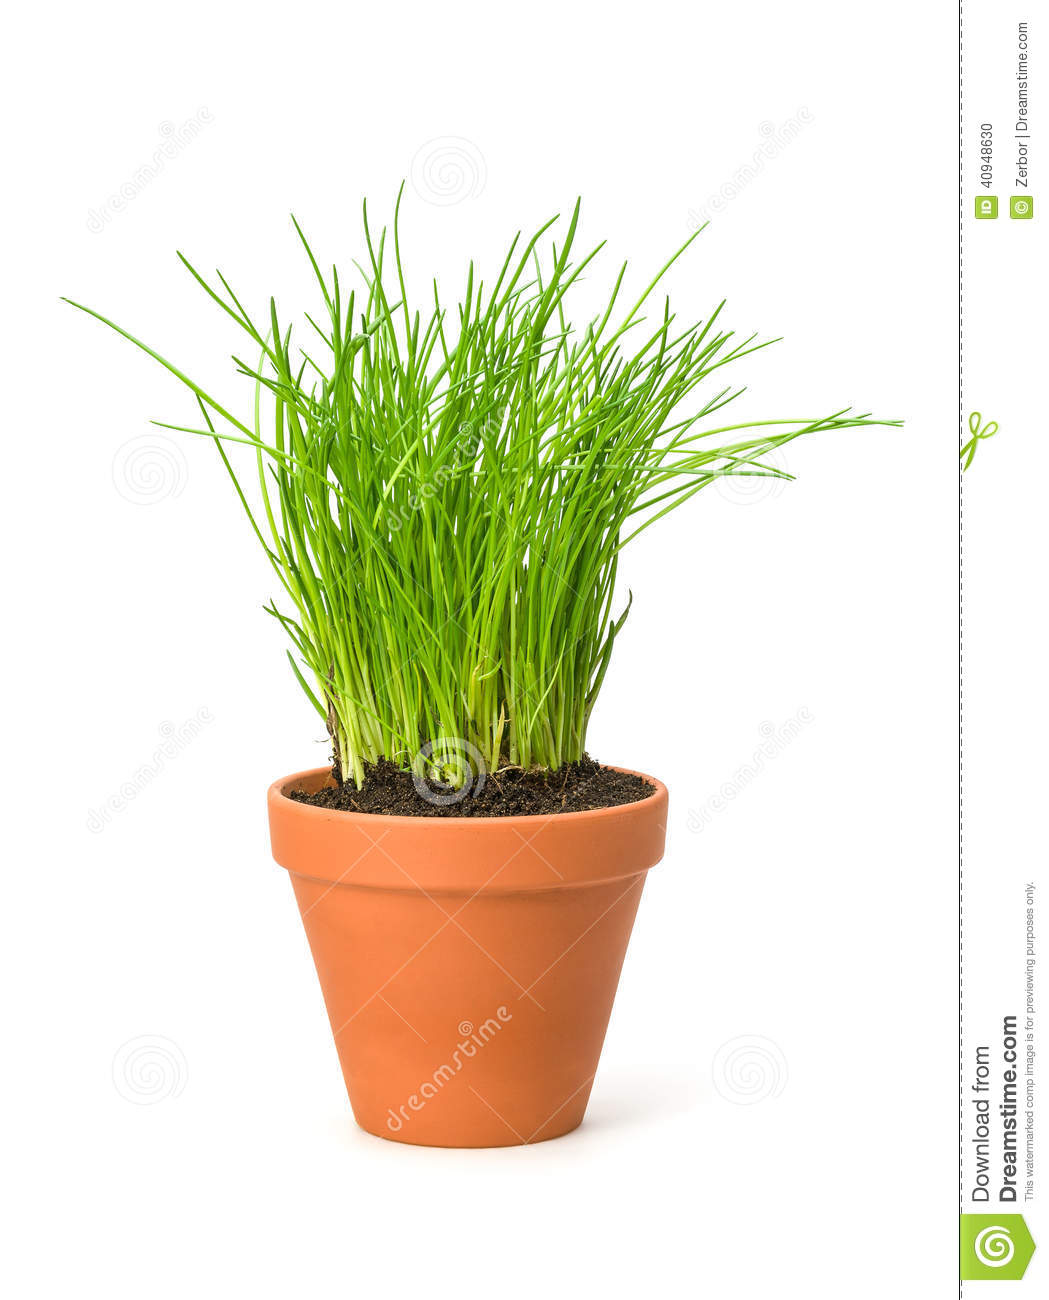 Image of: 1 020 Chives Pot Photos Free Royalty Free Stock Photos From Dreamstime